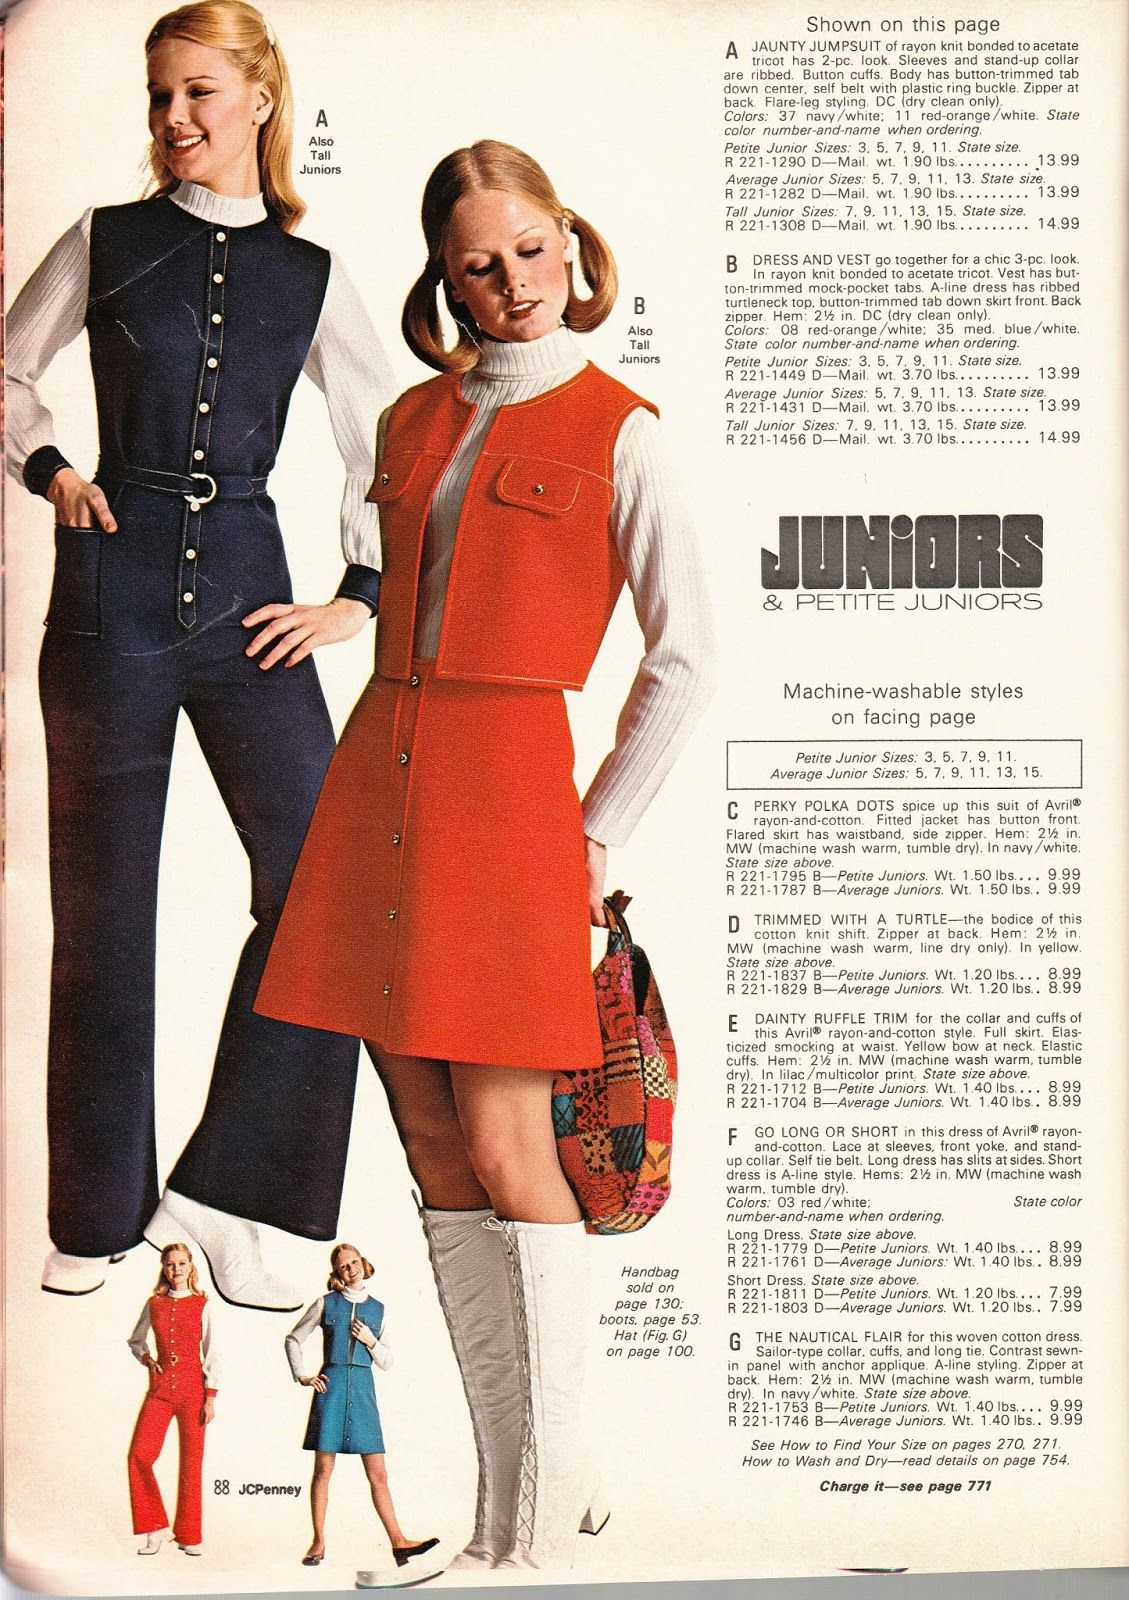 That's So 70s - More Jumpsuit Madness (Part 3)!!